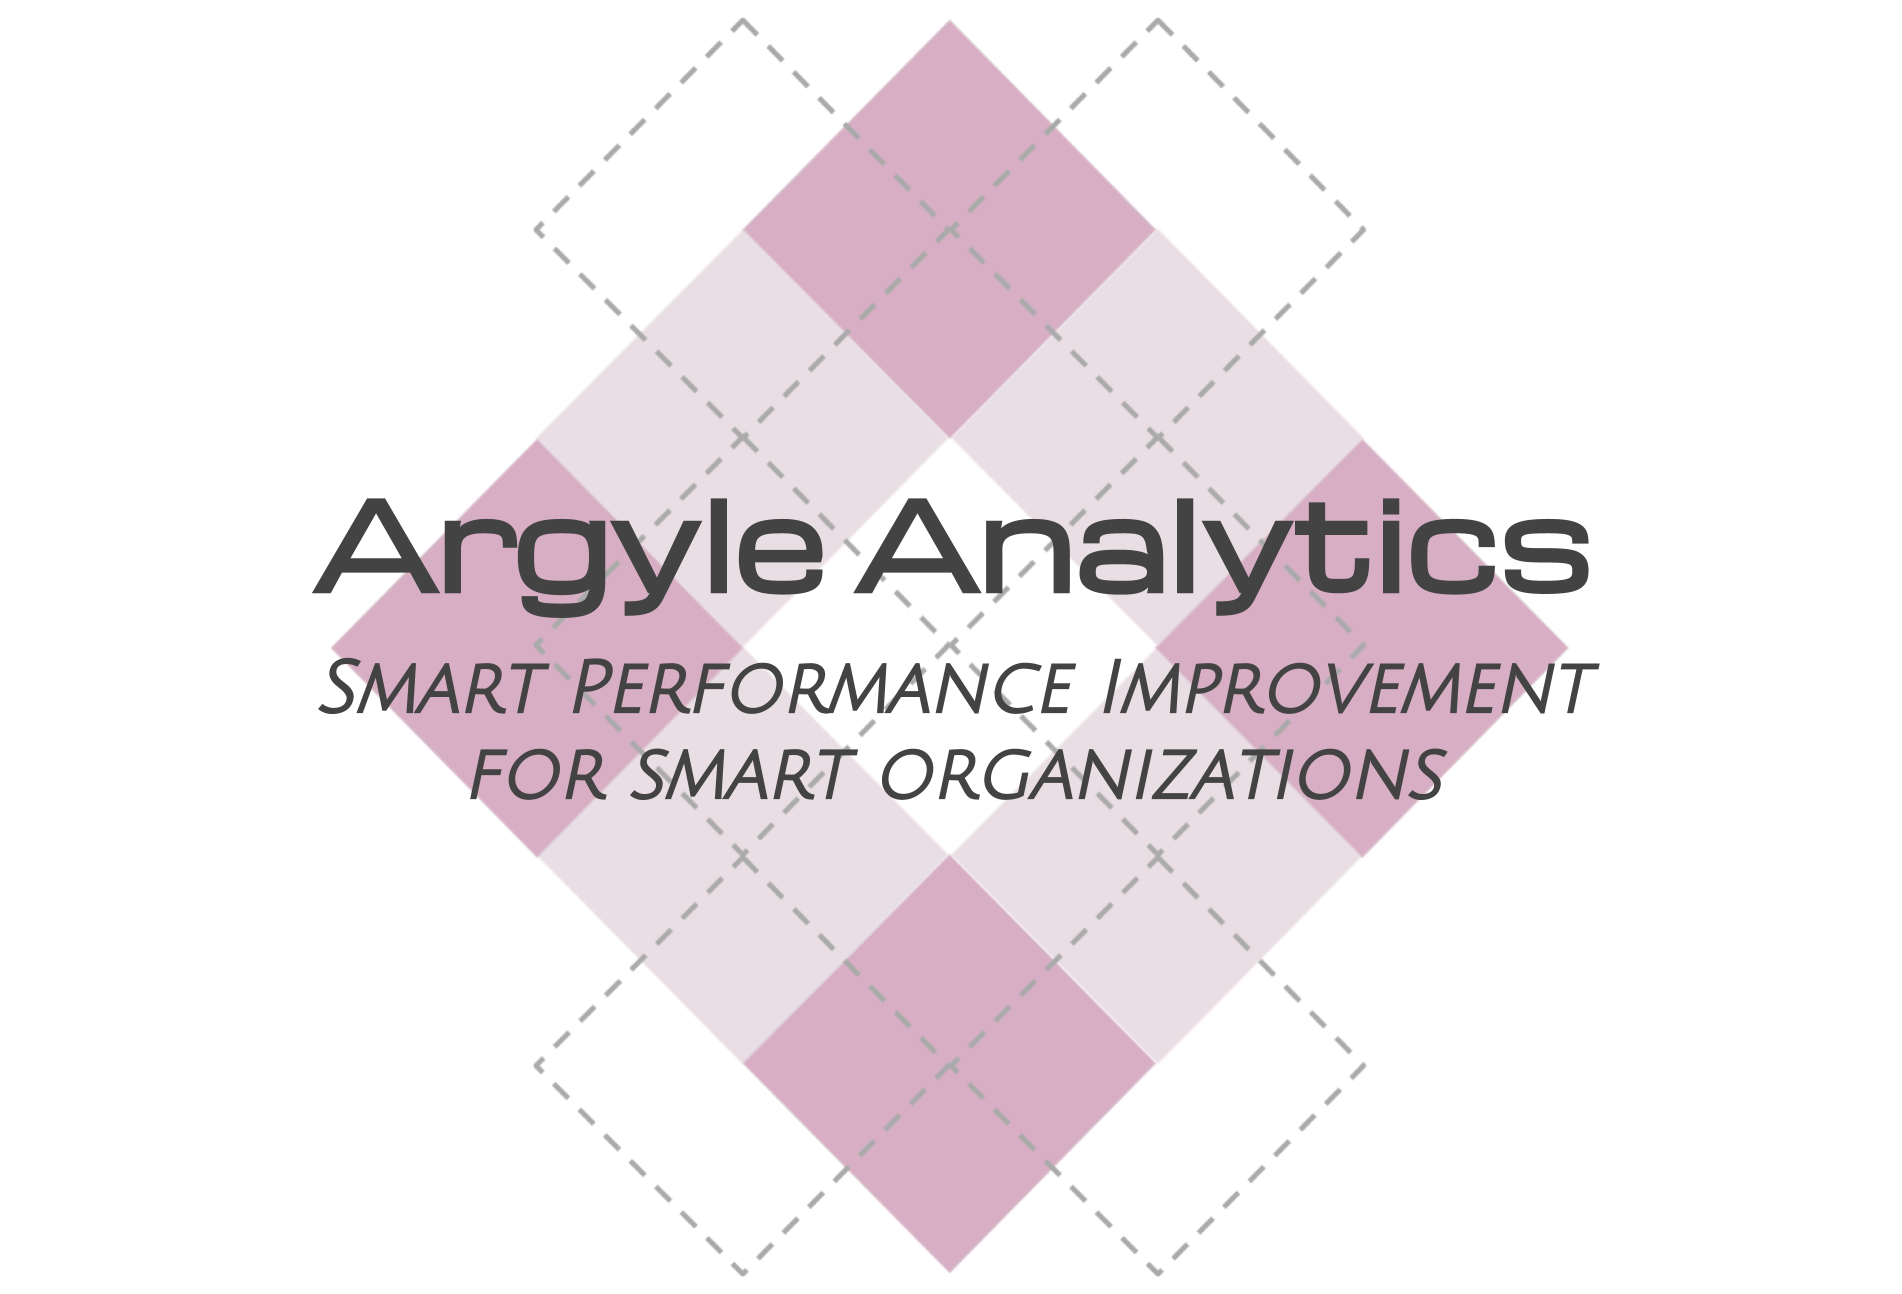 Argyle Analytics's Logo